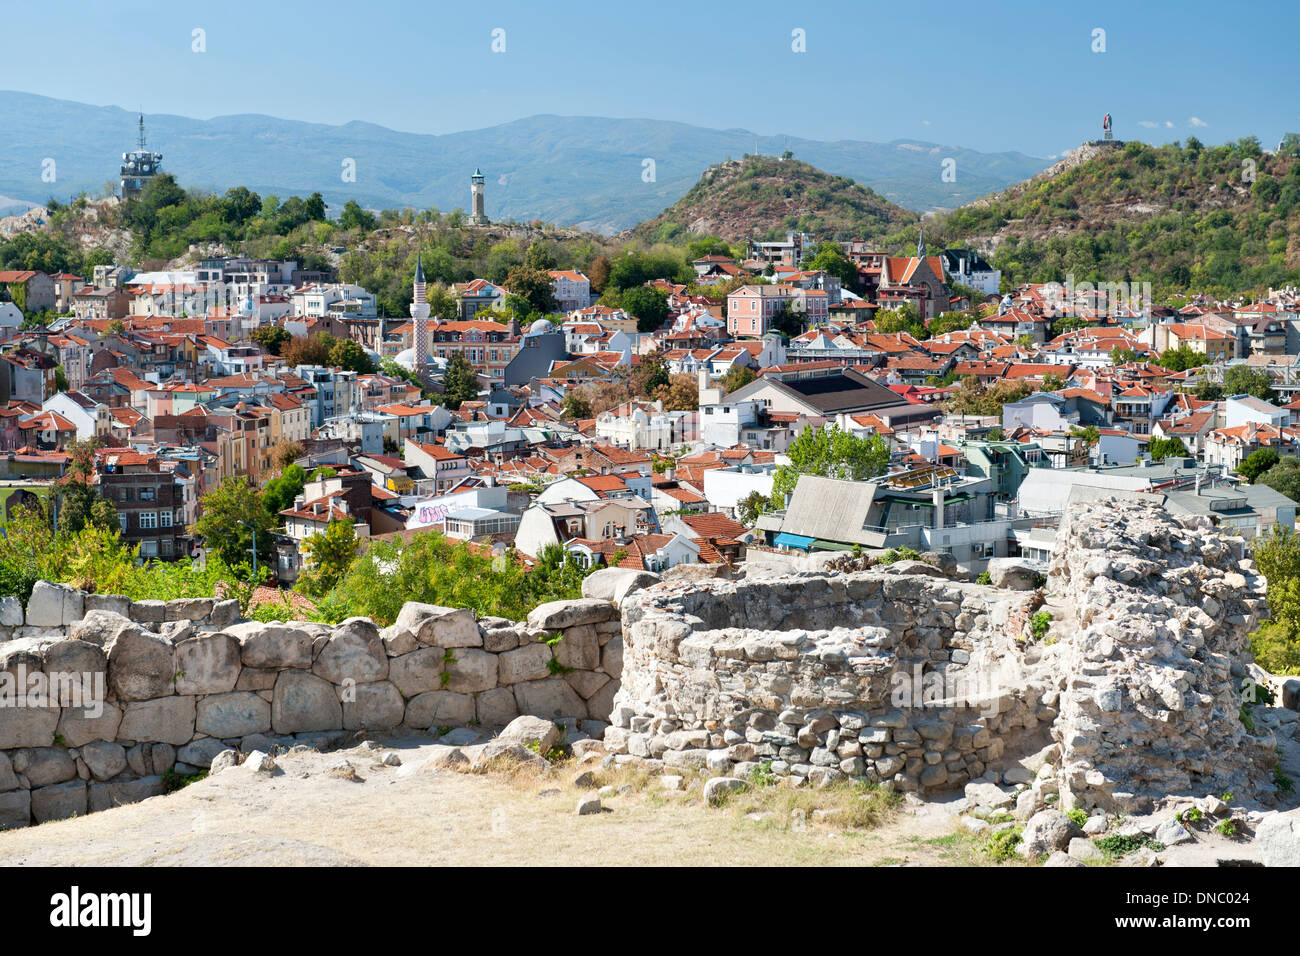 View from the ramparts of the ancient fortress on Nebet Hill in the old town in Plovdiv, the second largest city in Bulgaria. - Stock Image